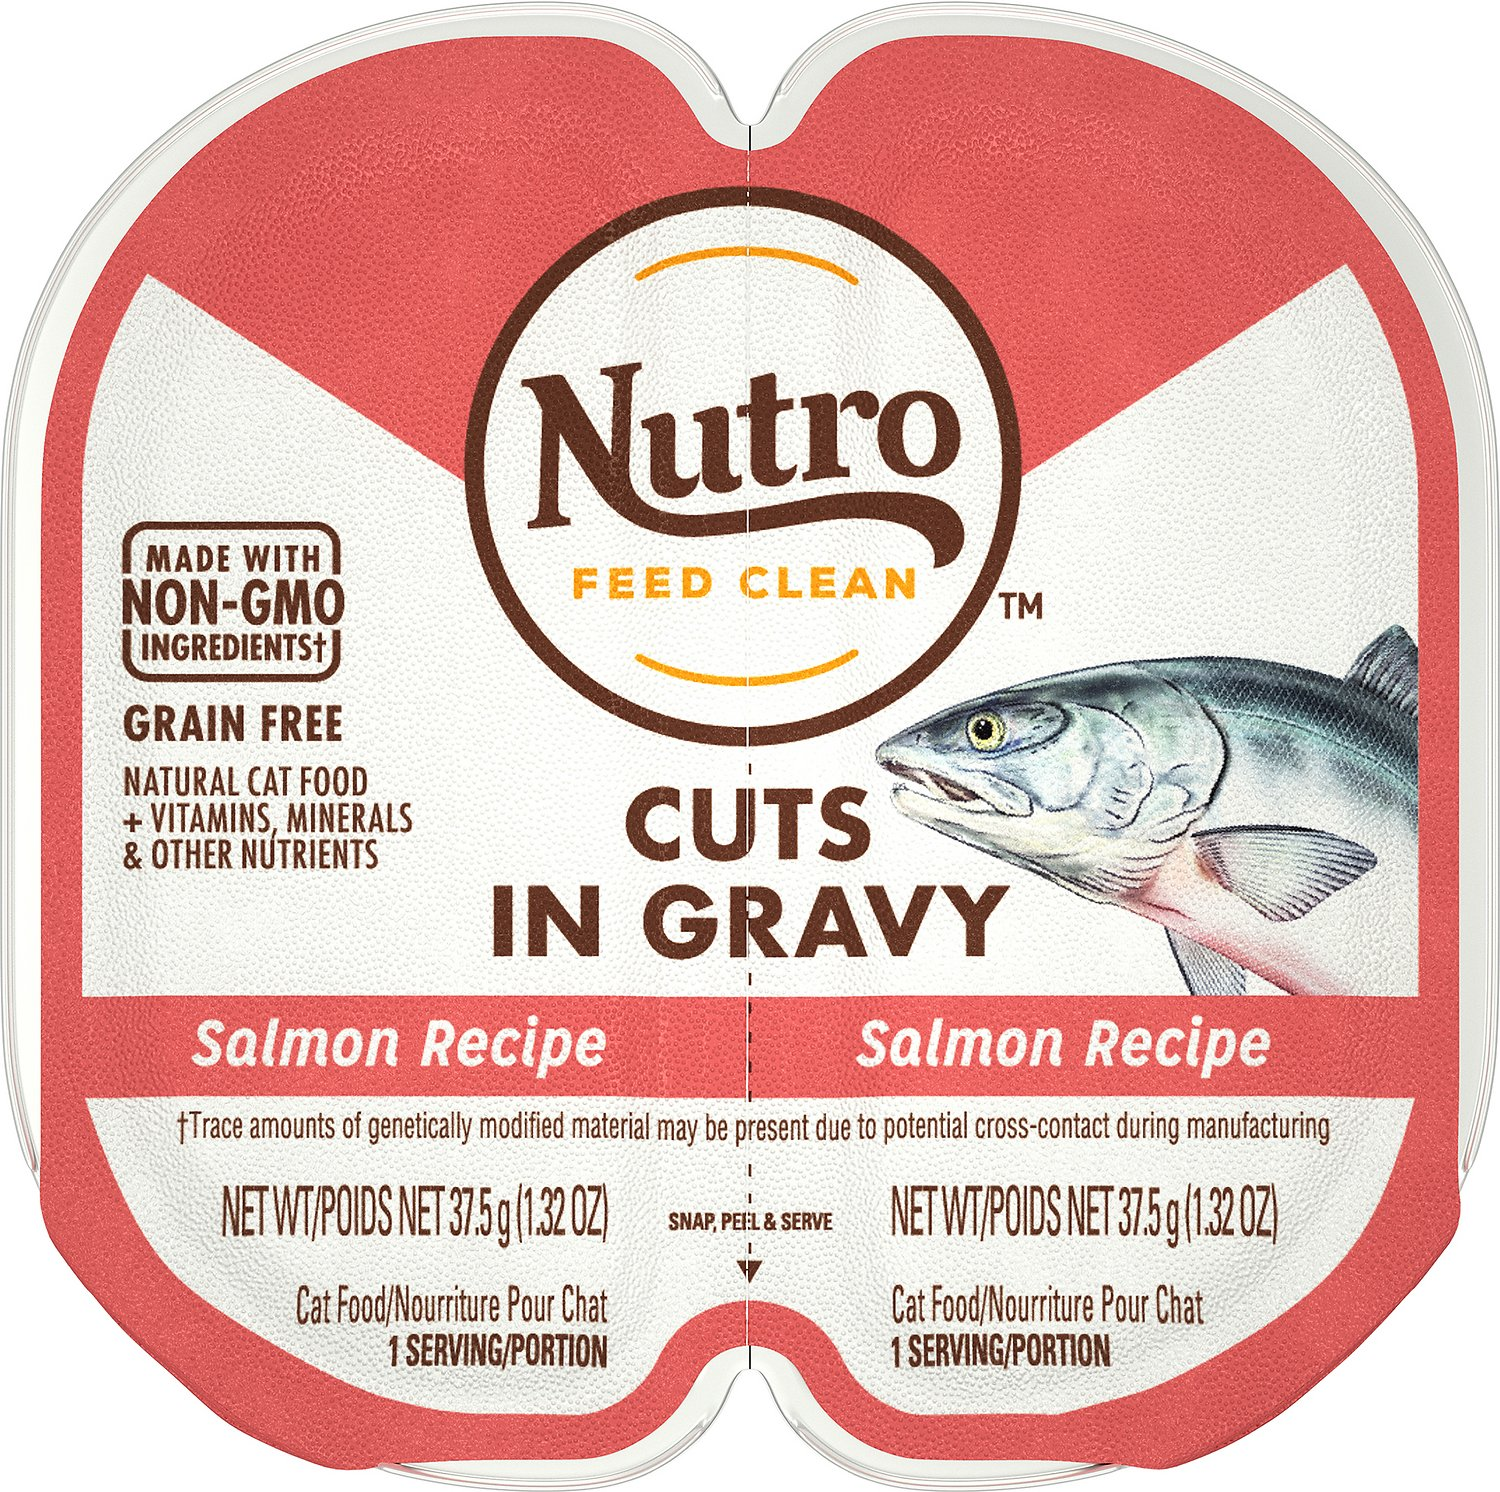 Nutro Perfect Portions Grain-Free Cuts in Gravy Salmon Recipe Cat Food Trays Image